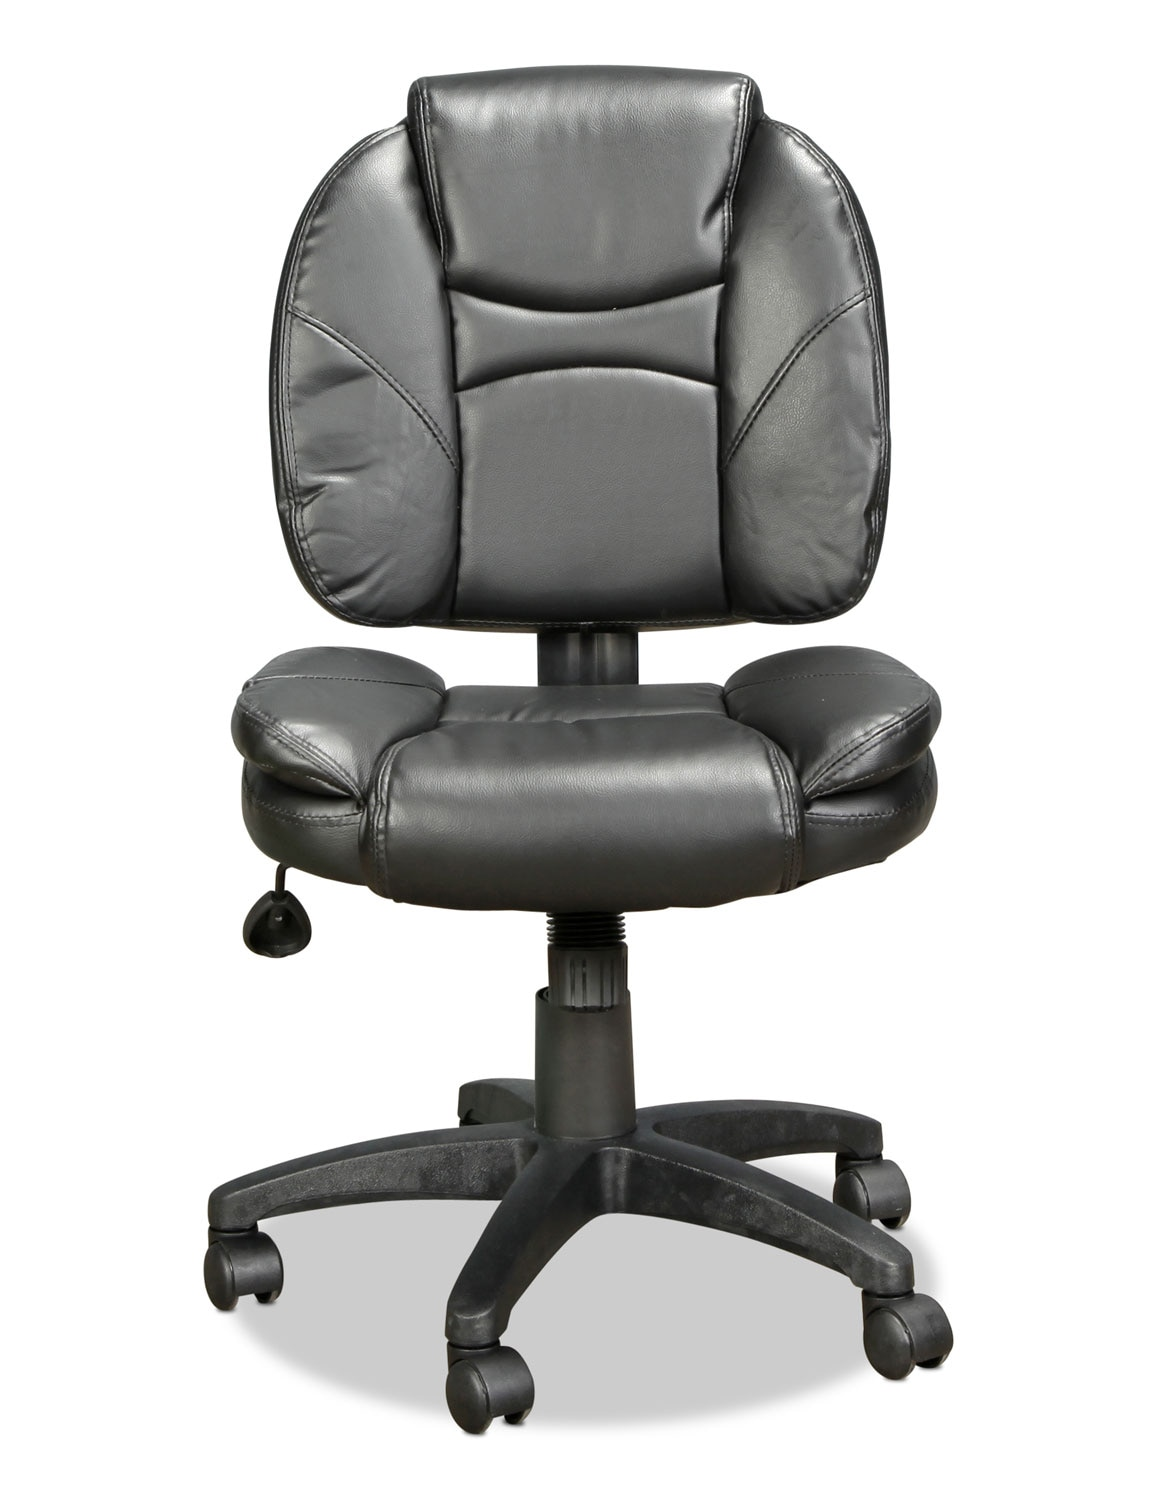 DuraPlush Desk Chair